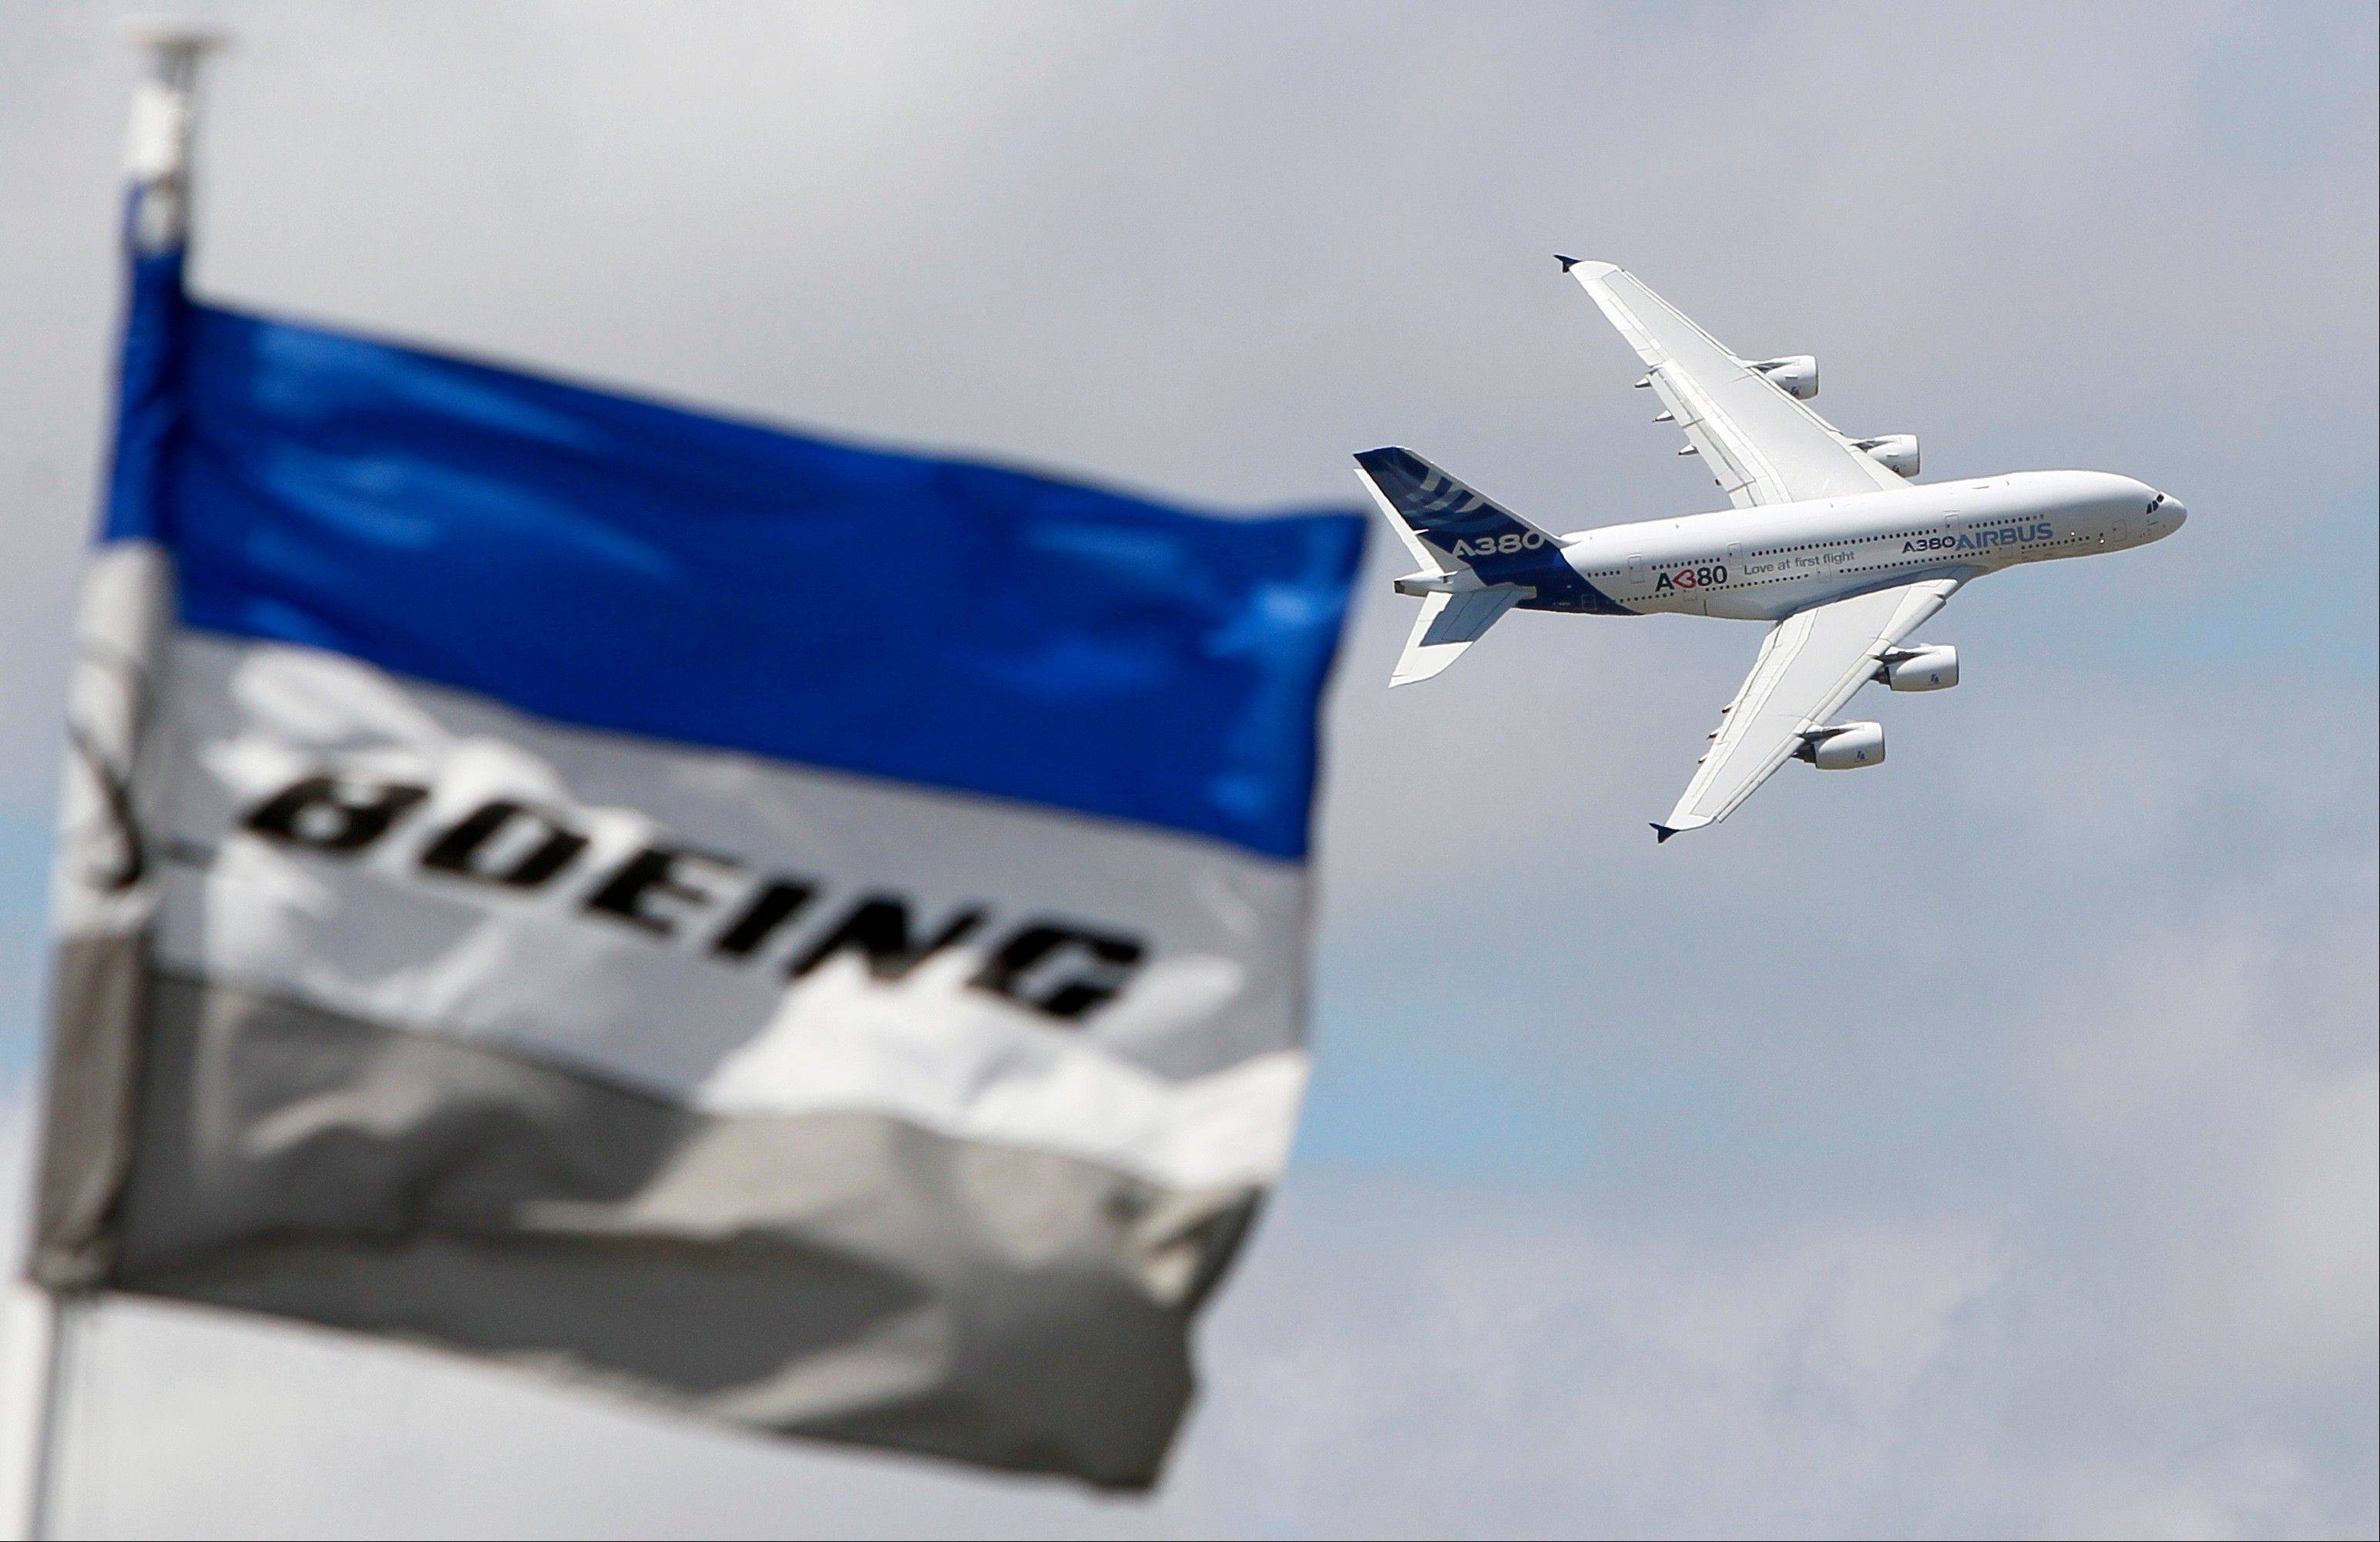 FILE - The June 25, 2011 file photo shows a Boeing flag fluttering as an Airbus A380 flies past during a demonstration flight at the 49th Paris Air Show at Le Bourget airport, east of Paris. The European Union seeks some US$ 12 billion in sanctions against the United States as part of a long-running dispute before the World Trade Organization involving subsidies to plane makers Airbus and Boeing. The Geneva-based trade body said Thursday, Sept. 27, 2012 that the EU plans request on Oct. 23 the right to impose the sanctions.